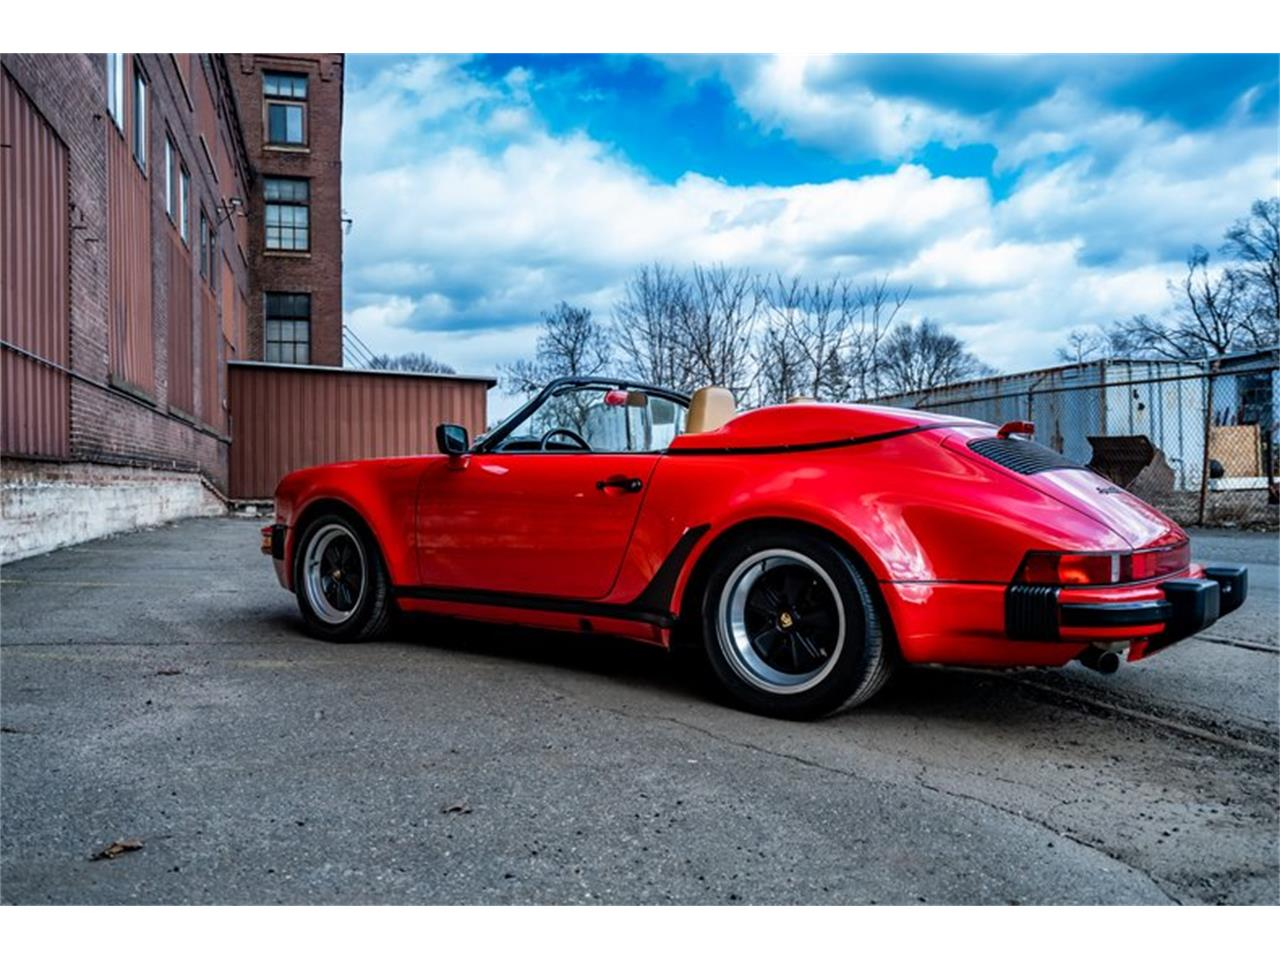 1989 Porsche 911 Speedster (CC-1202286) for sale in Wallingford, Connecticut